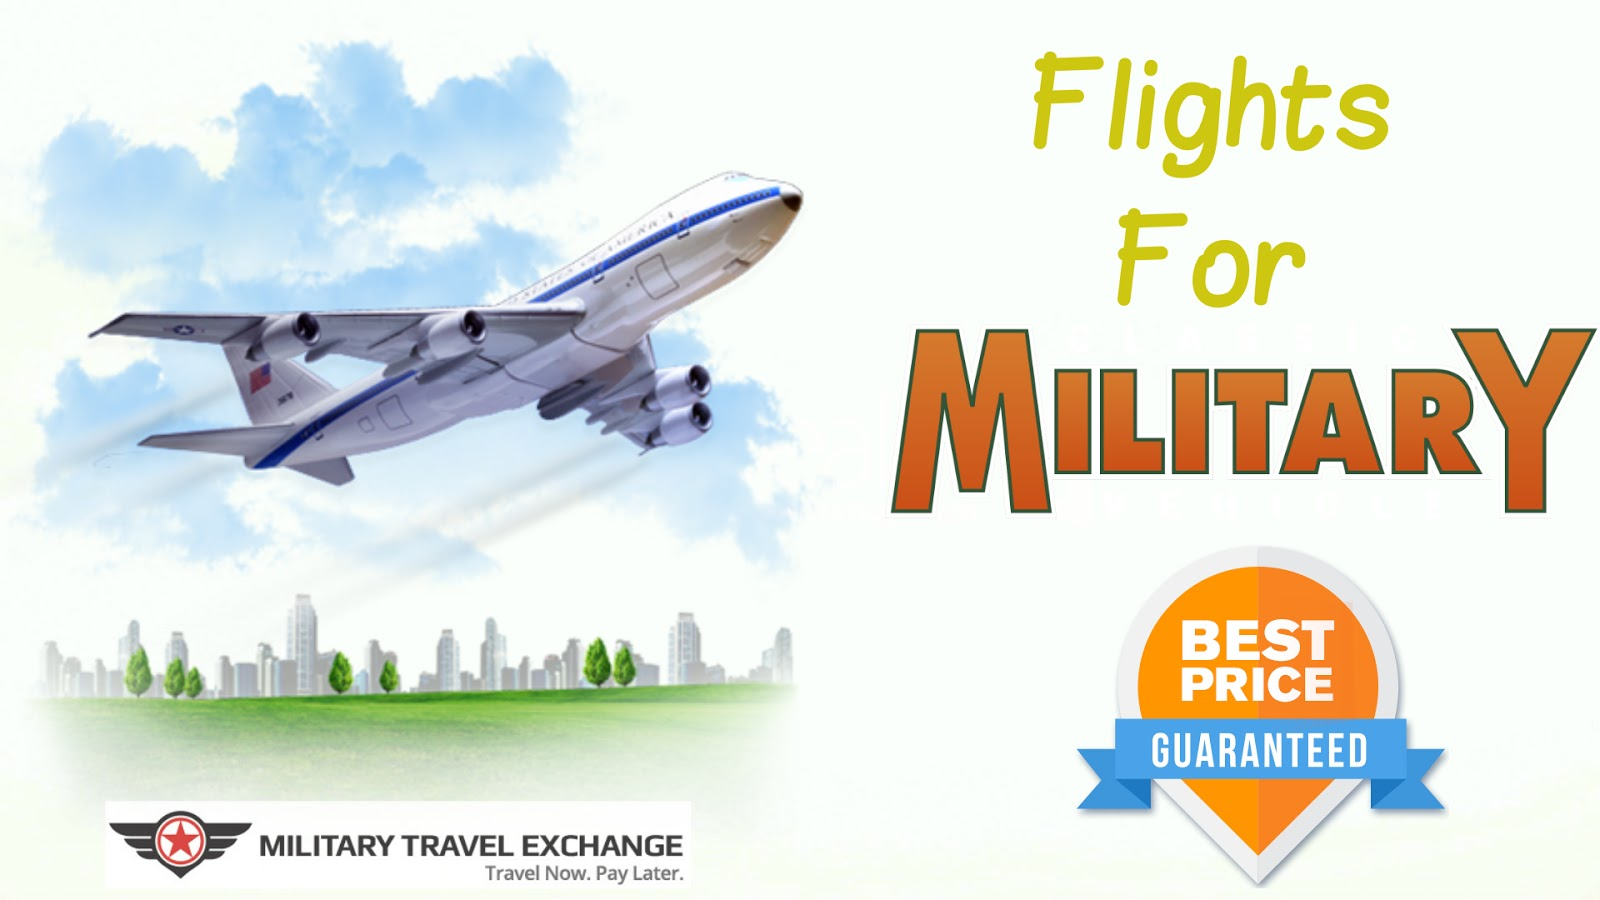 Grab our military discount airfare and save big. Browse through our list of deals to find the deal that offers you the best value. Whether you have to travel for work, or are looking for a vacation with a family, book flight tickets with us to have a relaxing and enjoyable vacation.4/4(K).